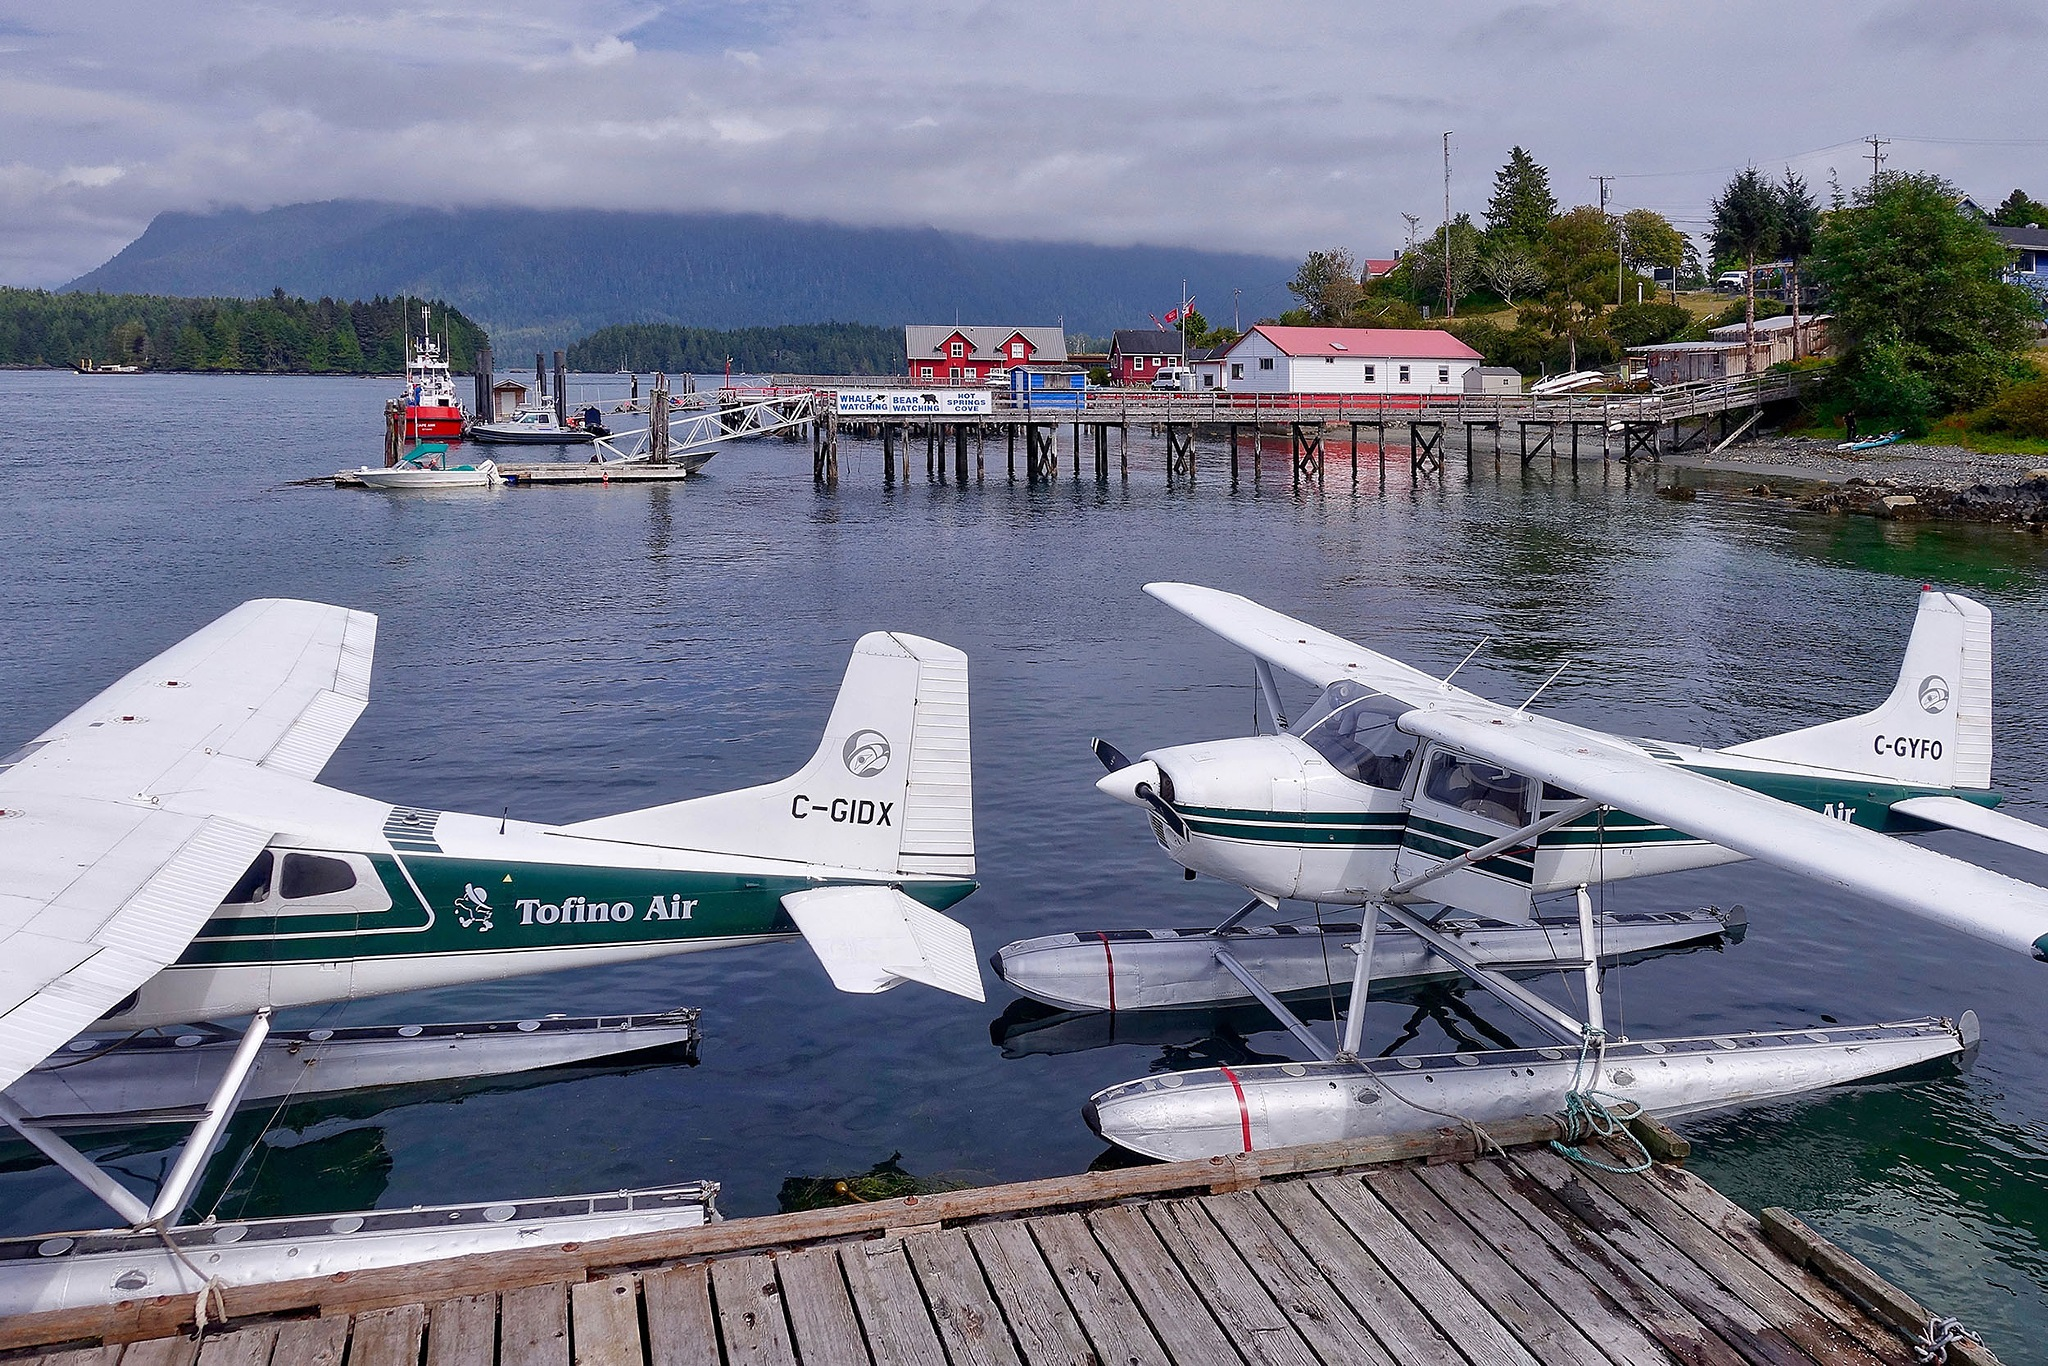 At the airport of Tofino in Canada. by Erwin Widmer